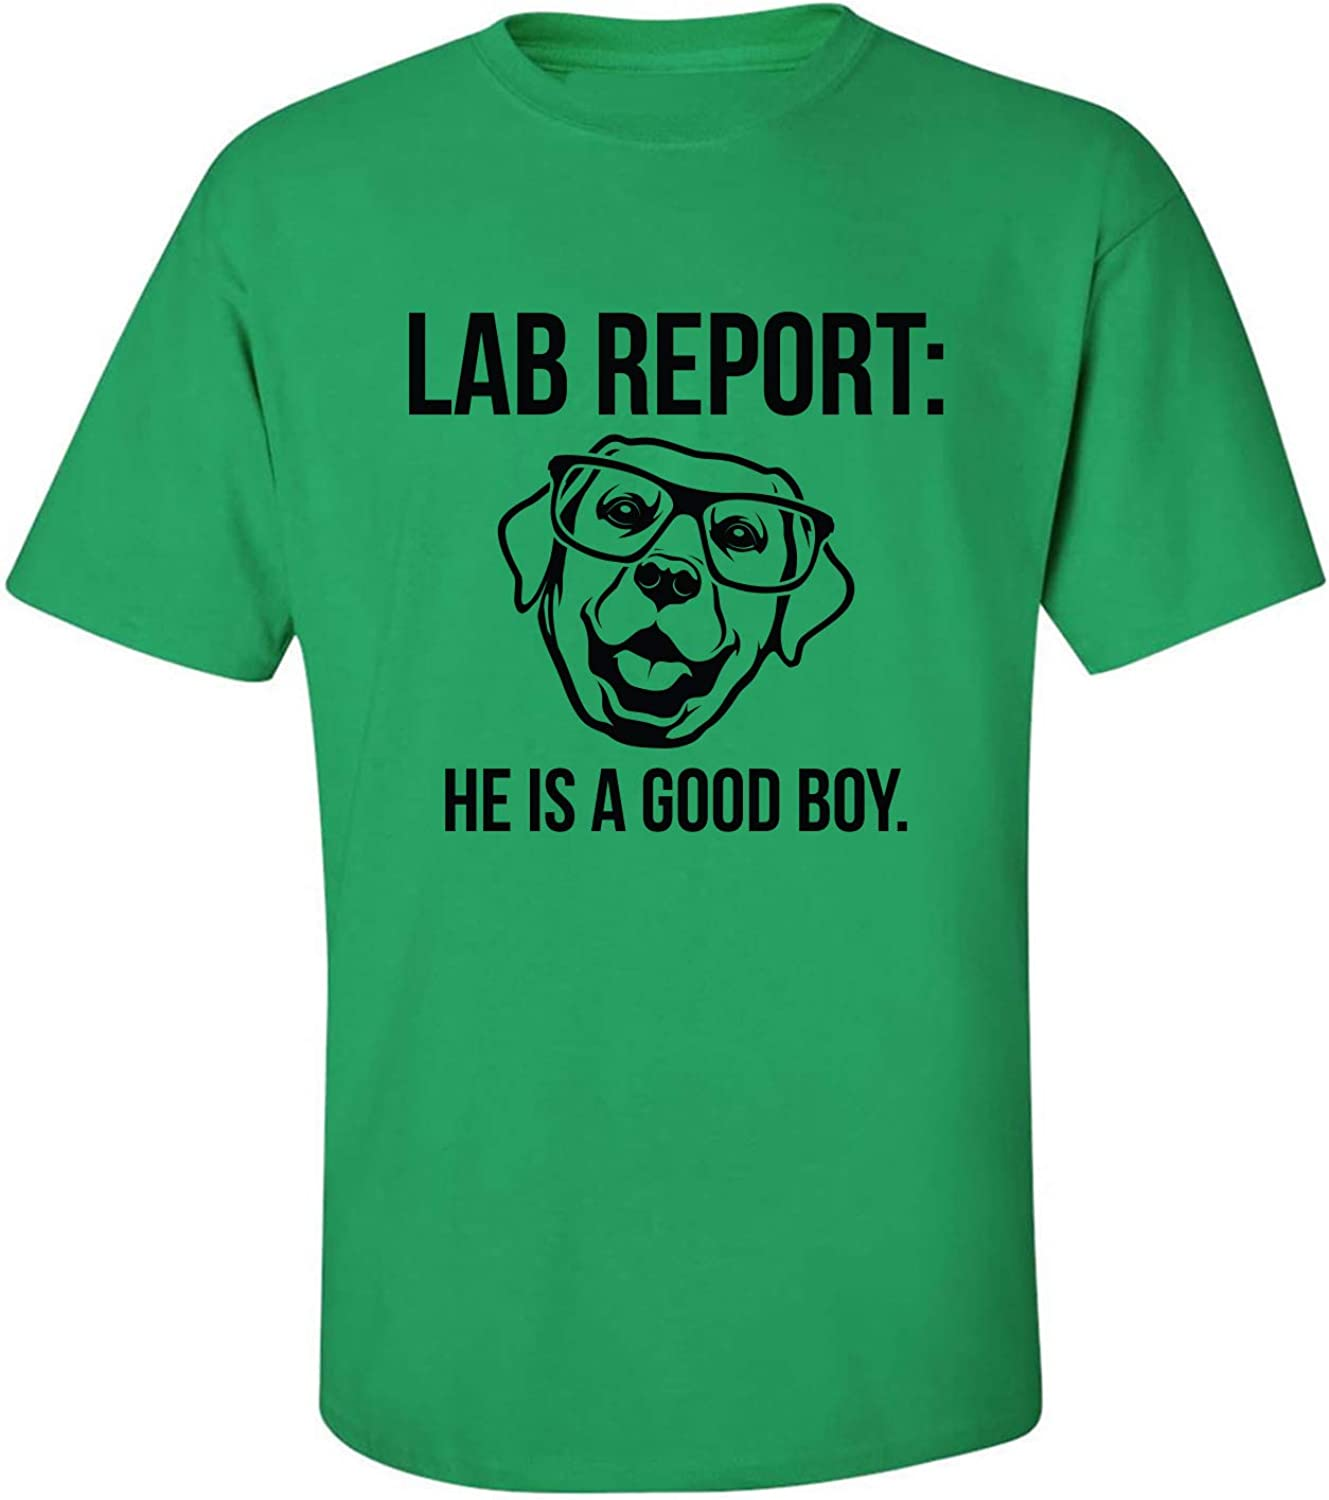 Lab Report Adult T-Shirt in Kelly Green - XXXXX-Large